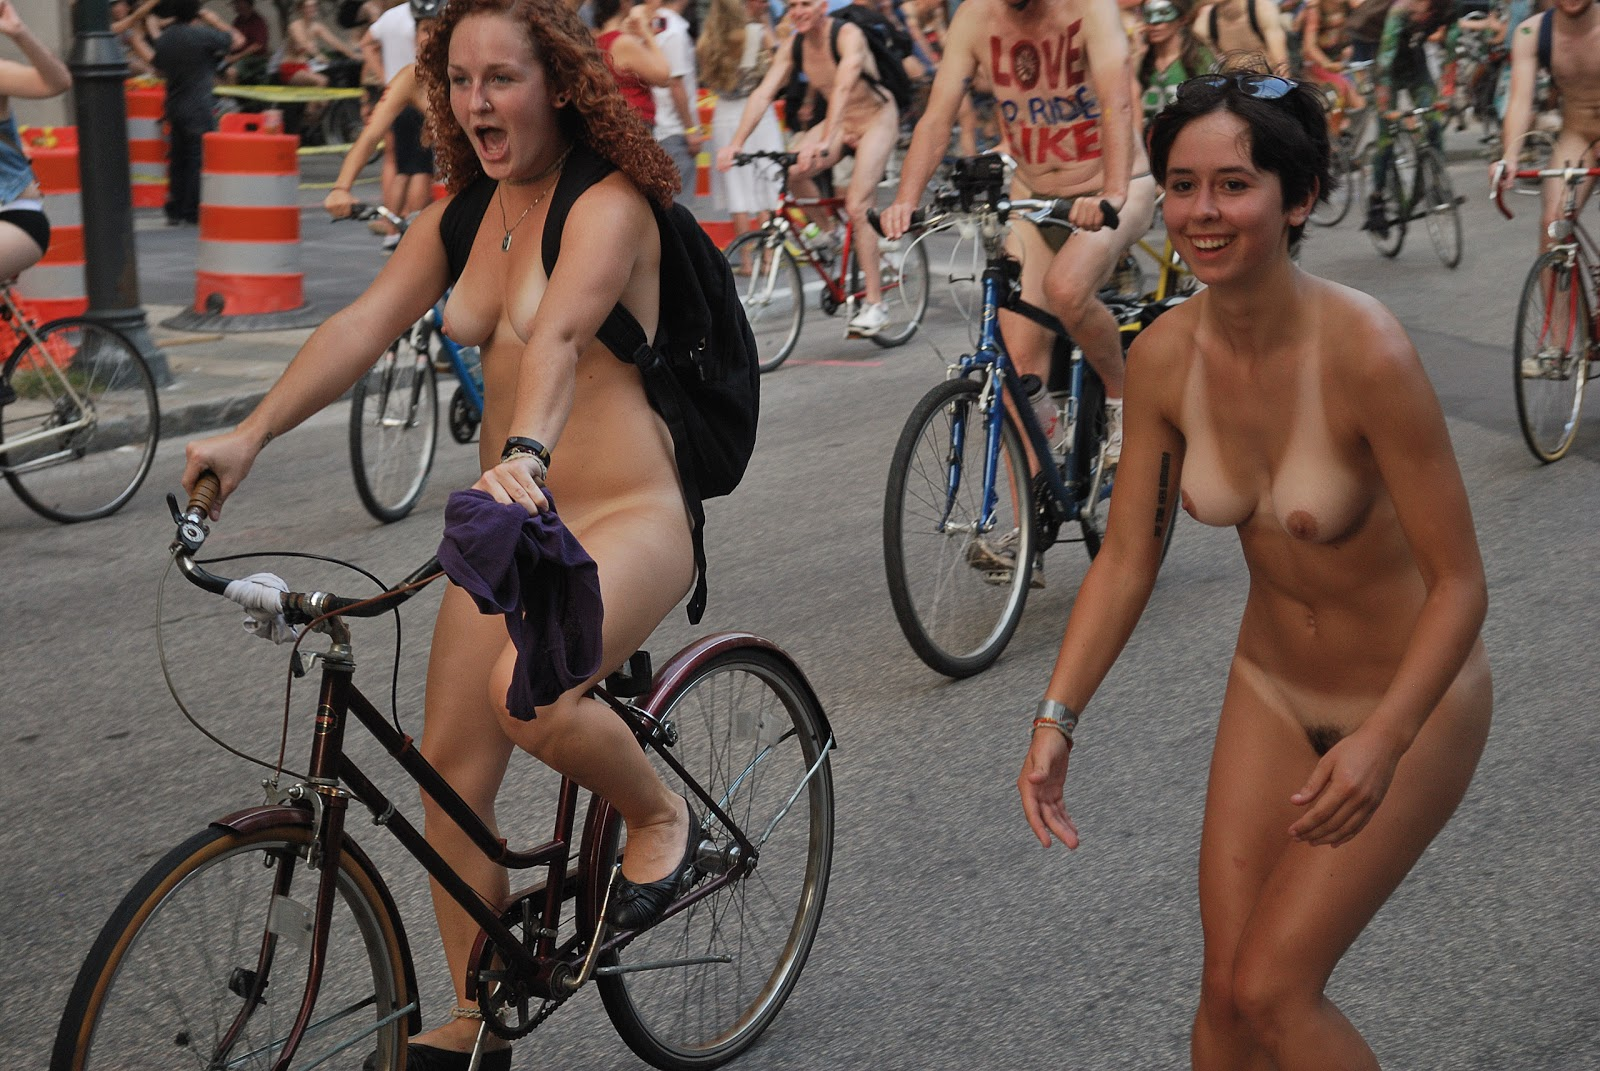 Riding Bike In Nude 92